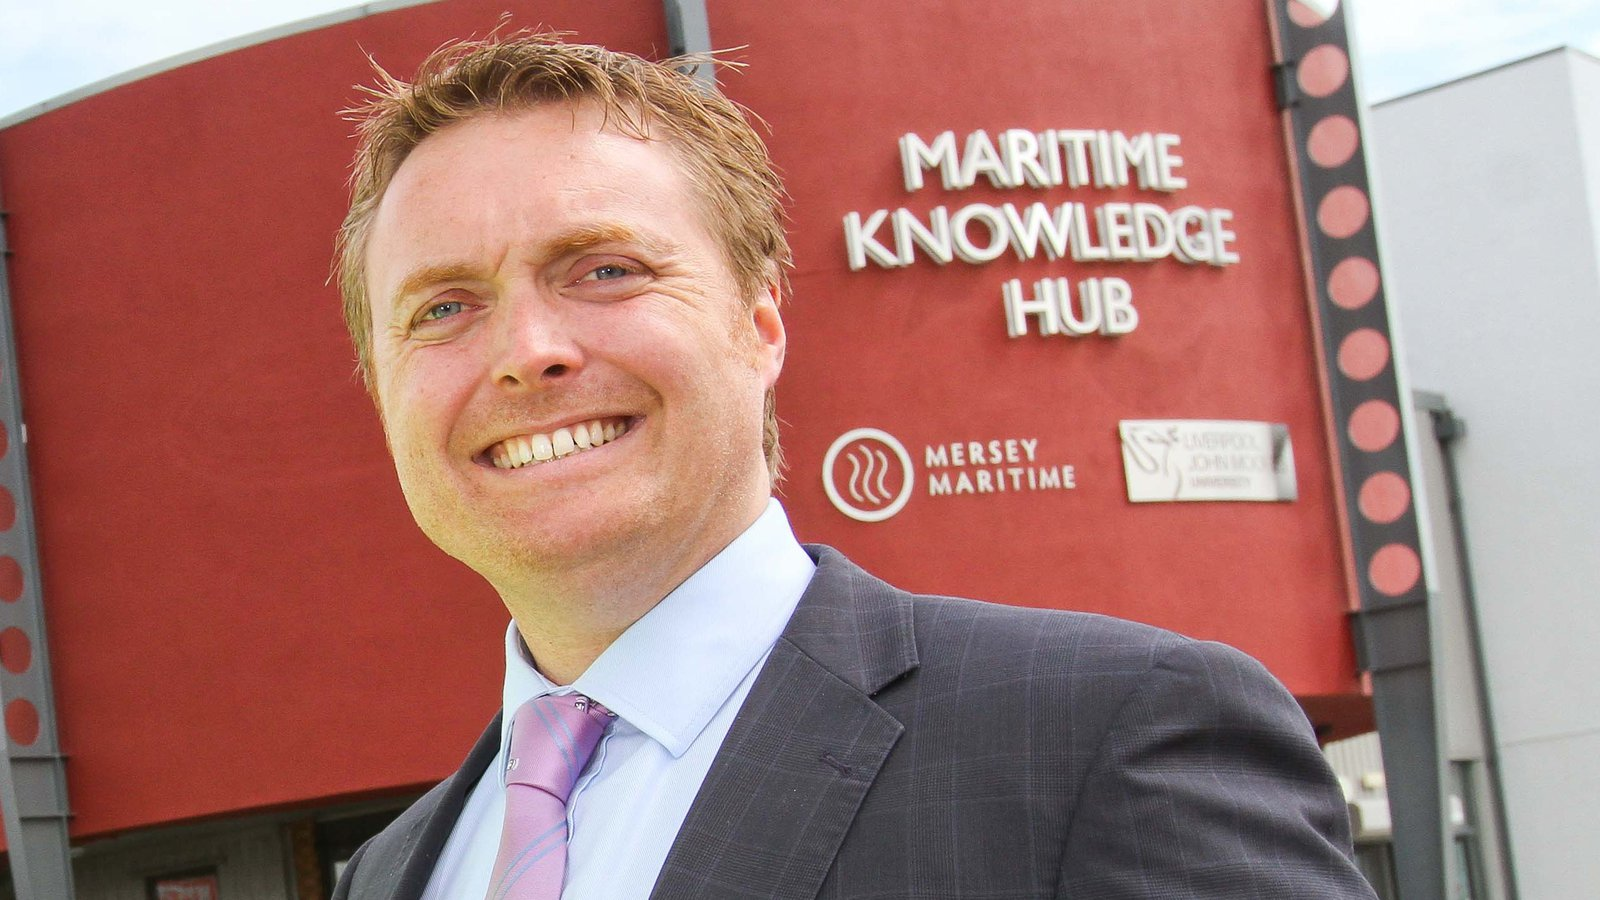 Chris Shirling-Rooke, CEO of Mersey Maritime